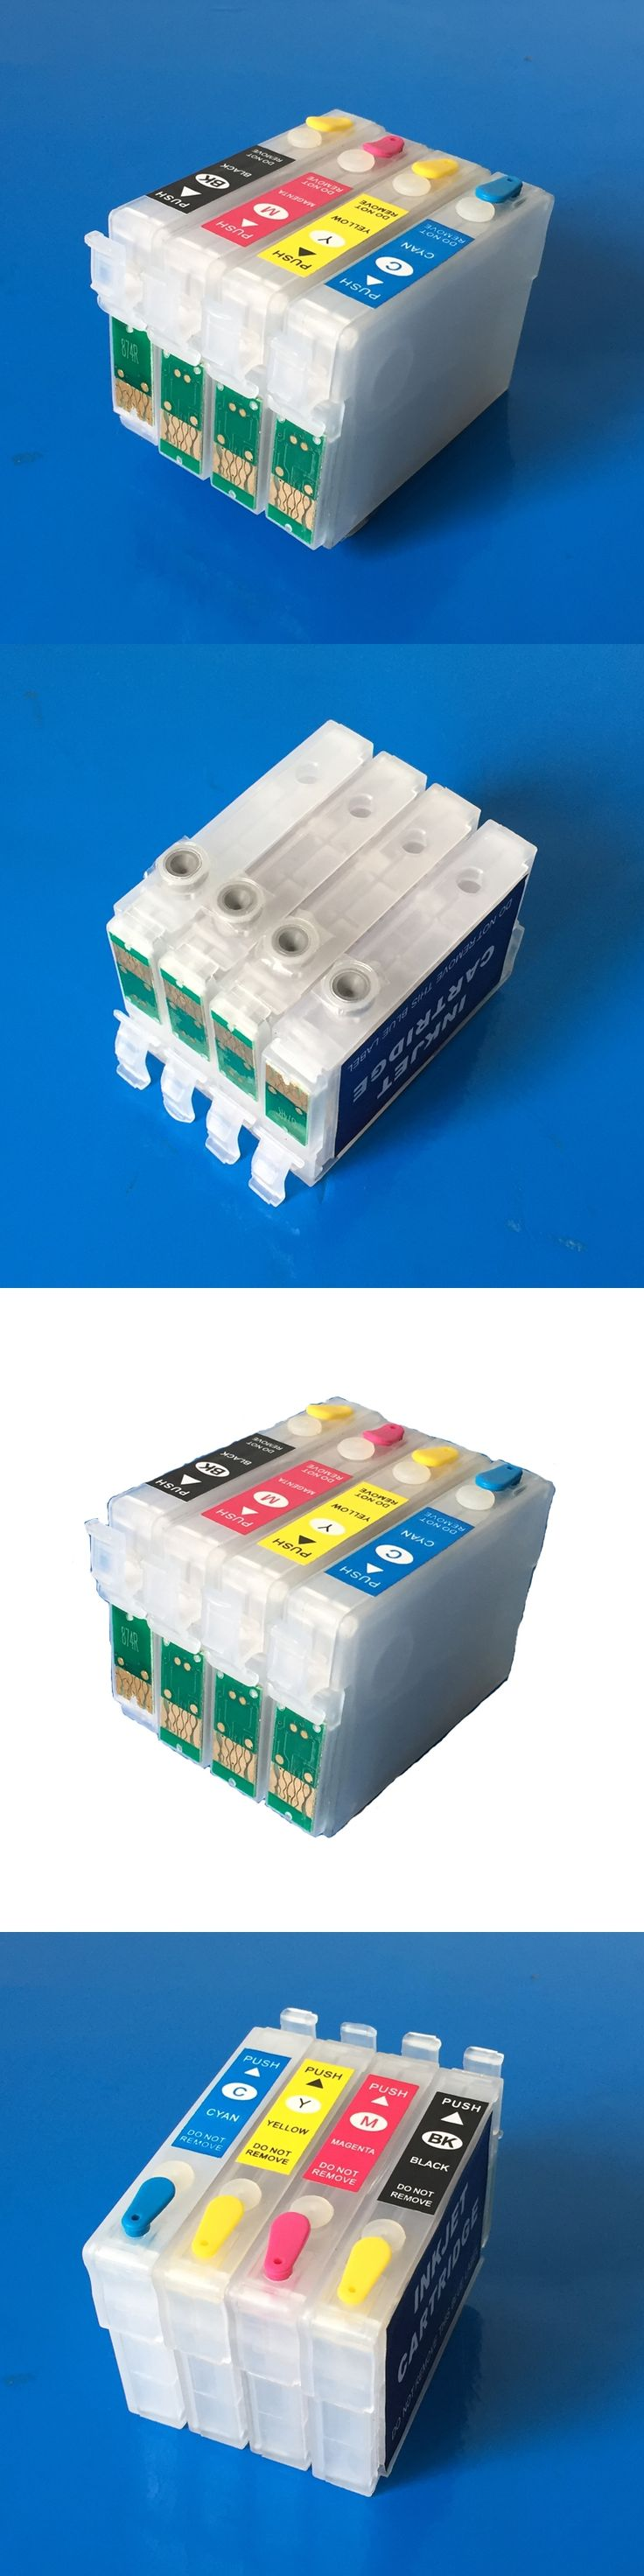 Refillable ink cartridges T1281-T1284 empty for Epson SX125  SX120  SX130 S22 SX230 SX235W SX420W SX425W SX430W  With ARC  chips